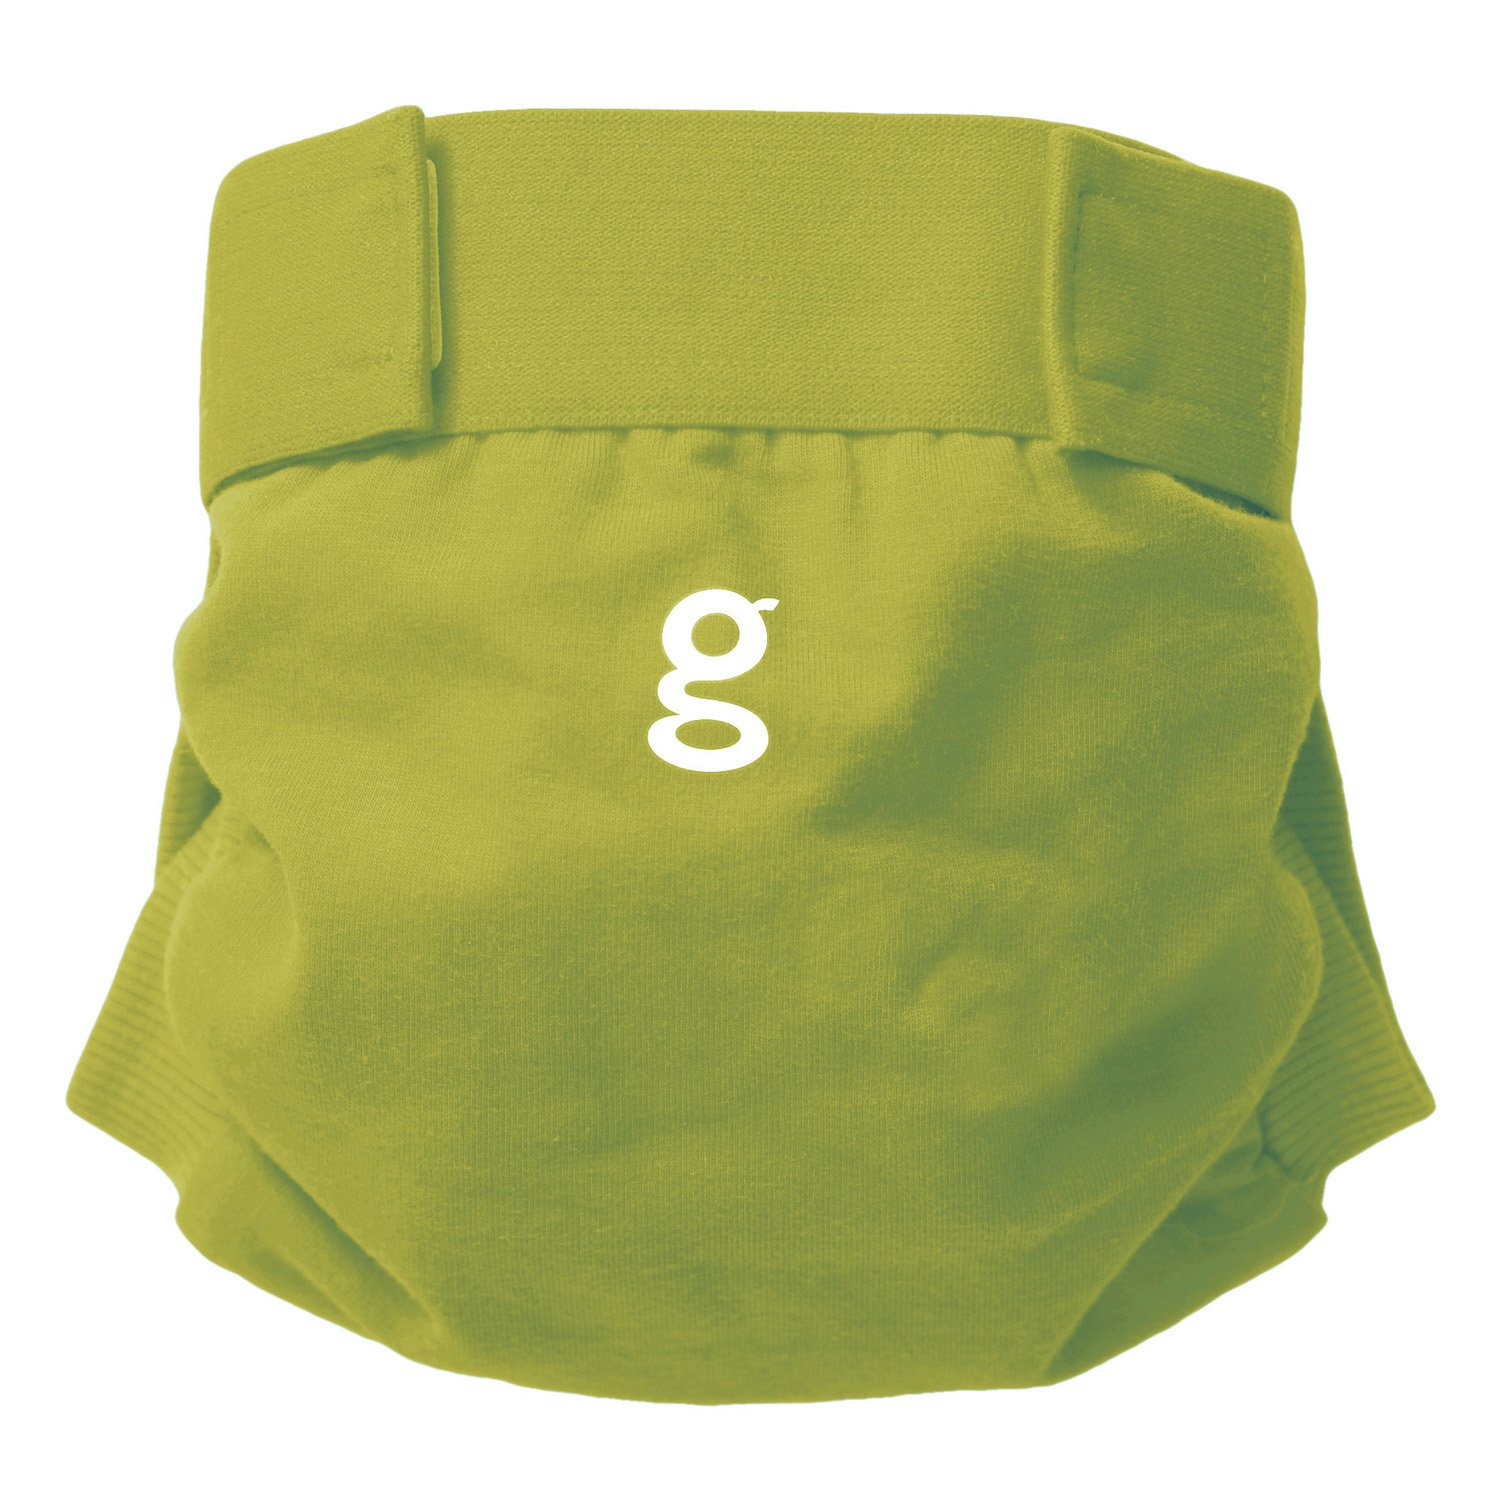 Gnappies Little Gpant Guppy Green, Medium Reuseable Nappies gDiapers 63035